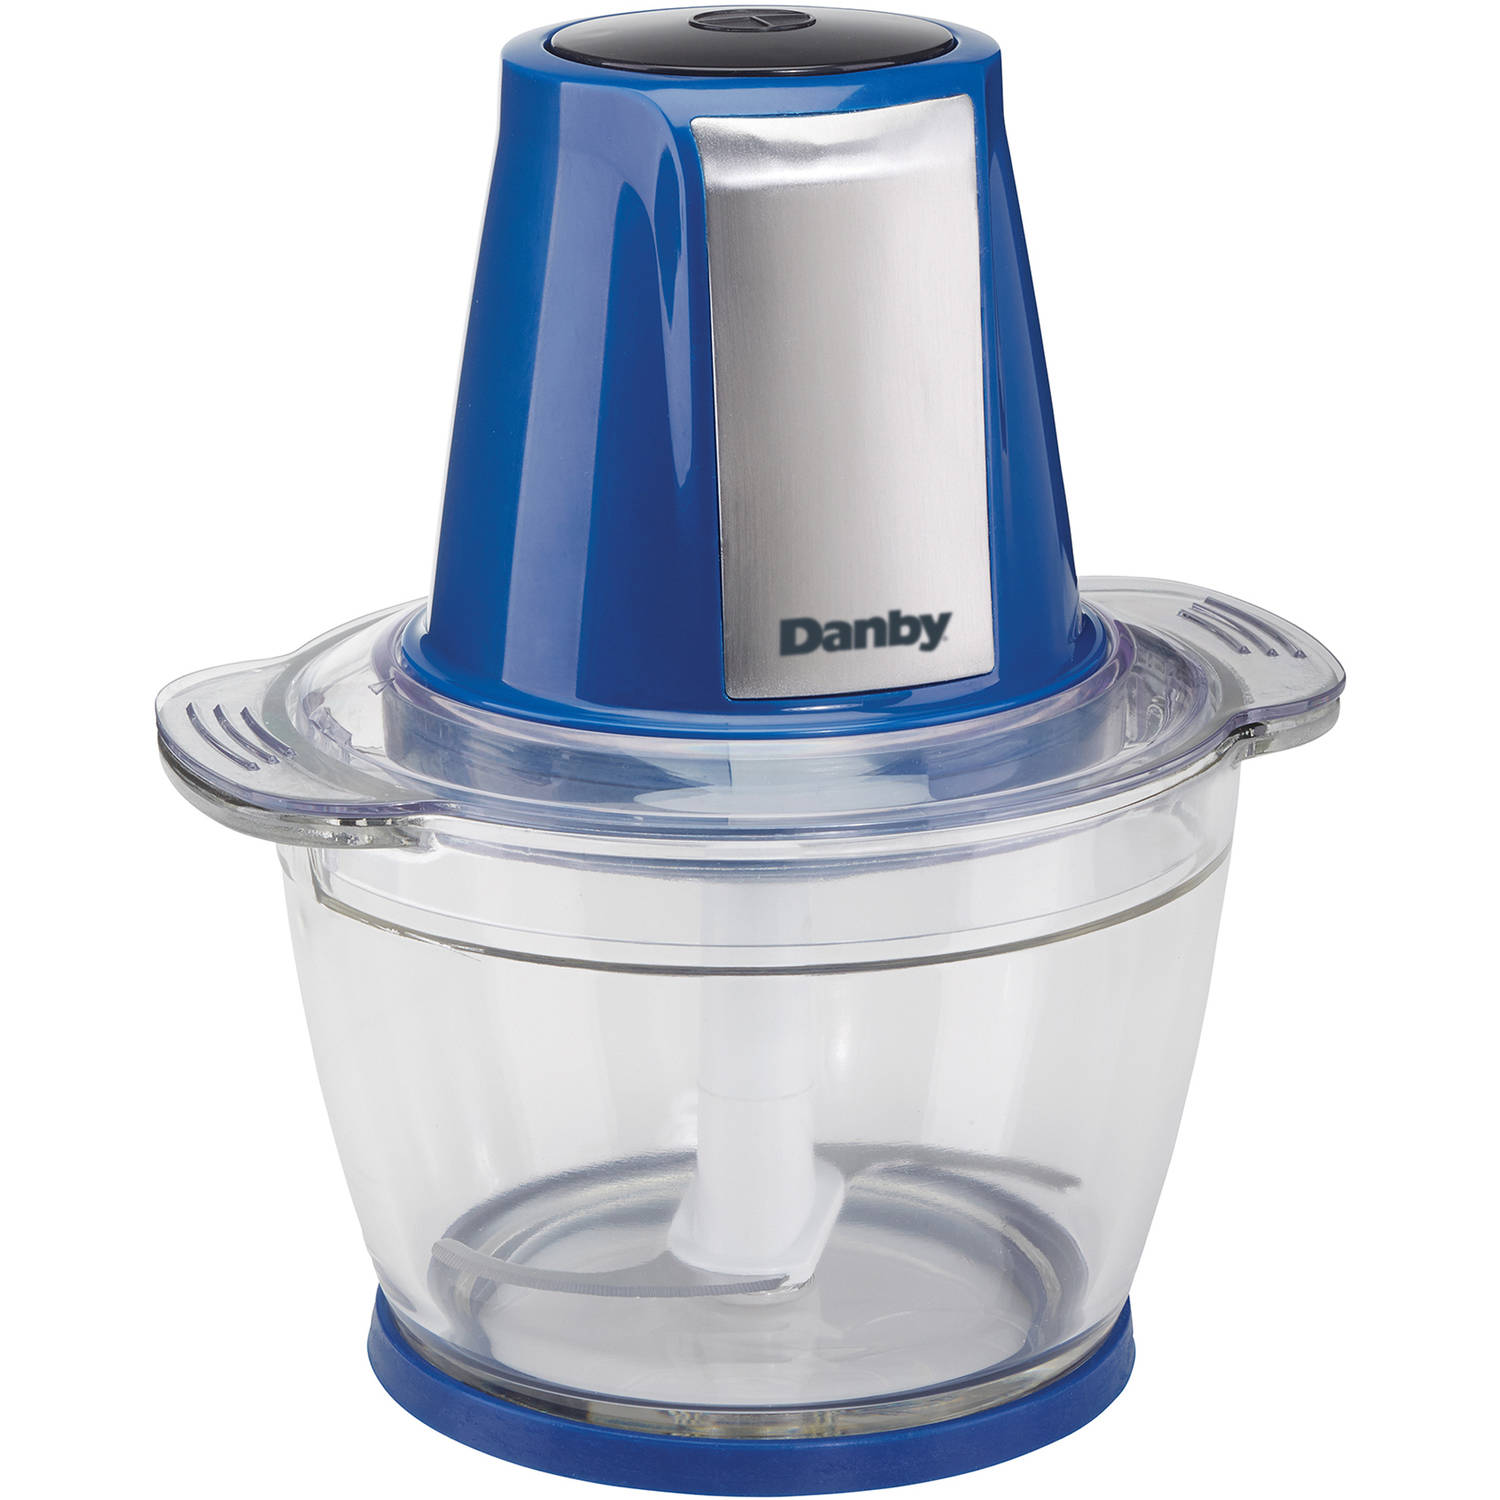 Danby 4-Cup Capacity Instant Pulse Electric Food Chopper